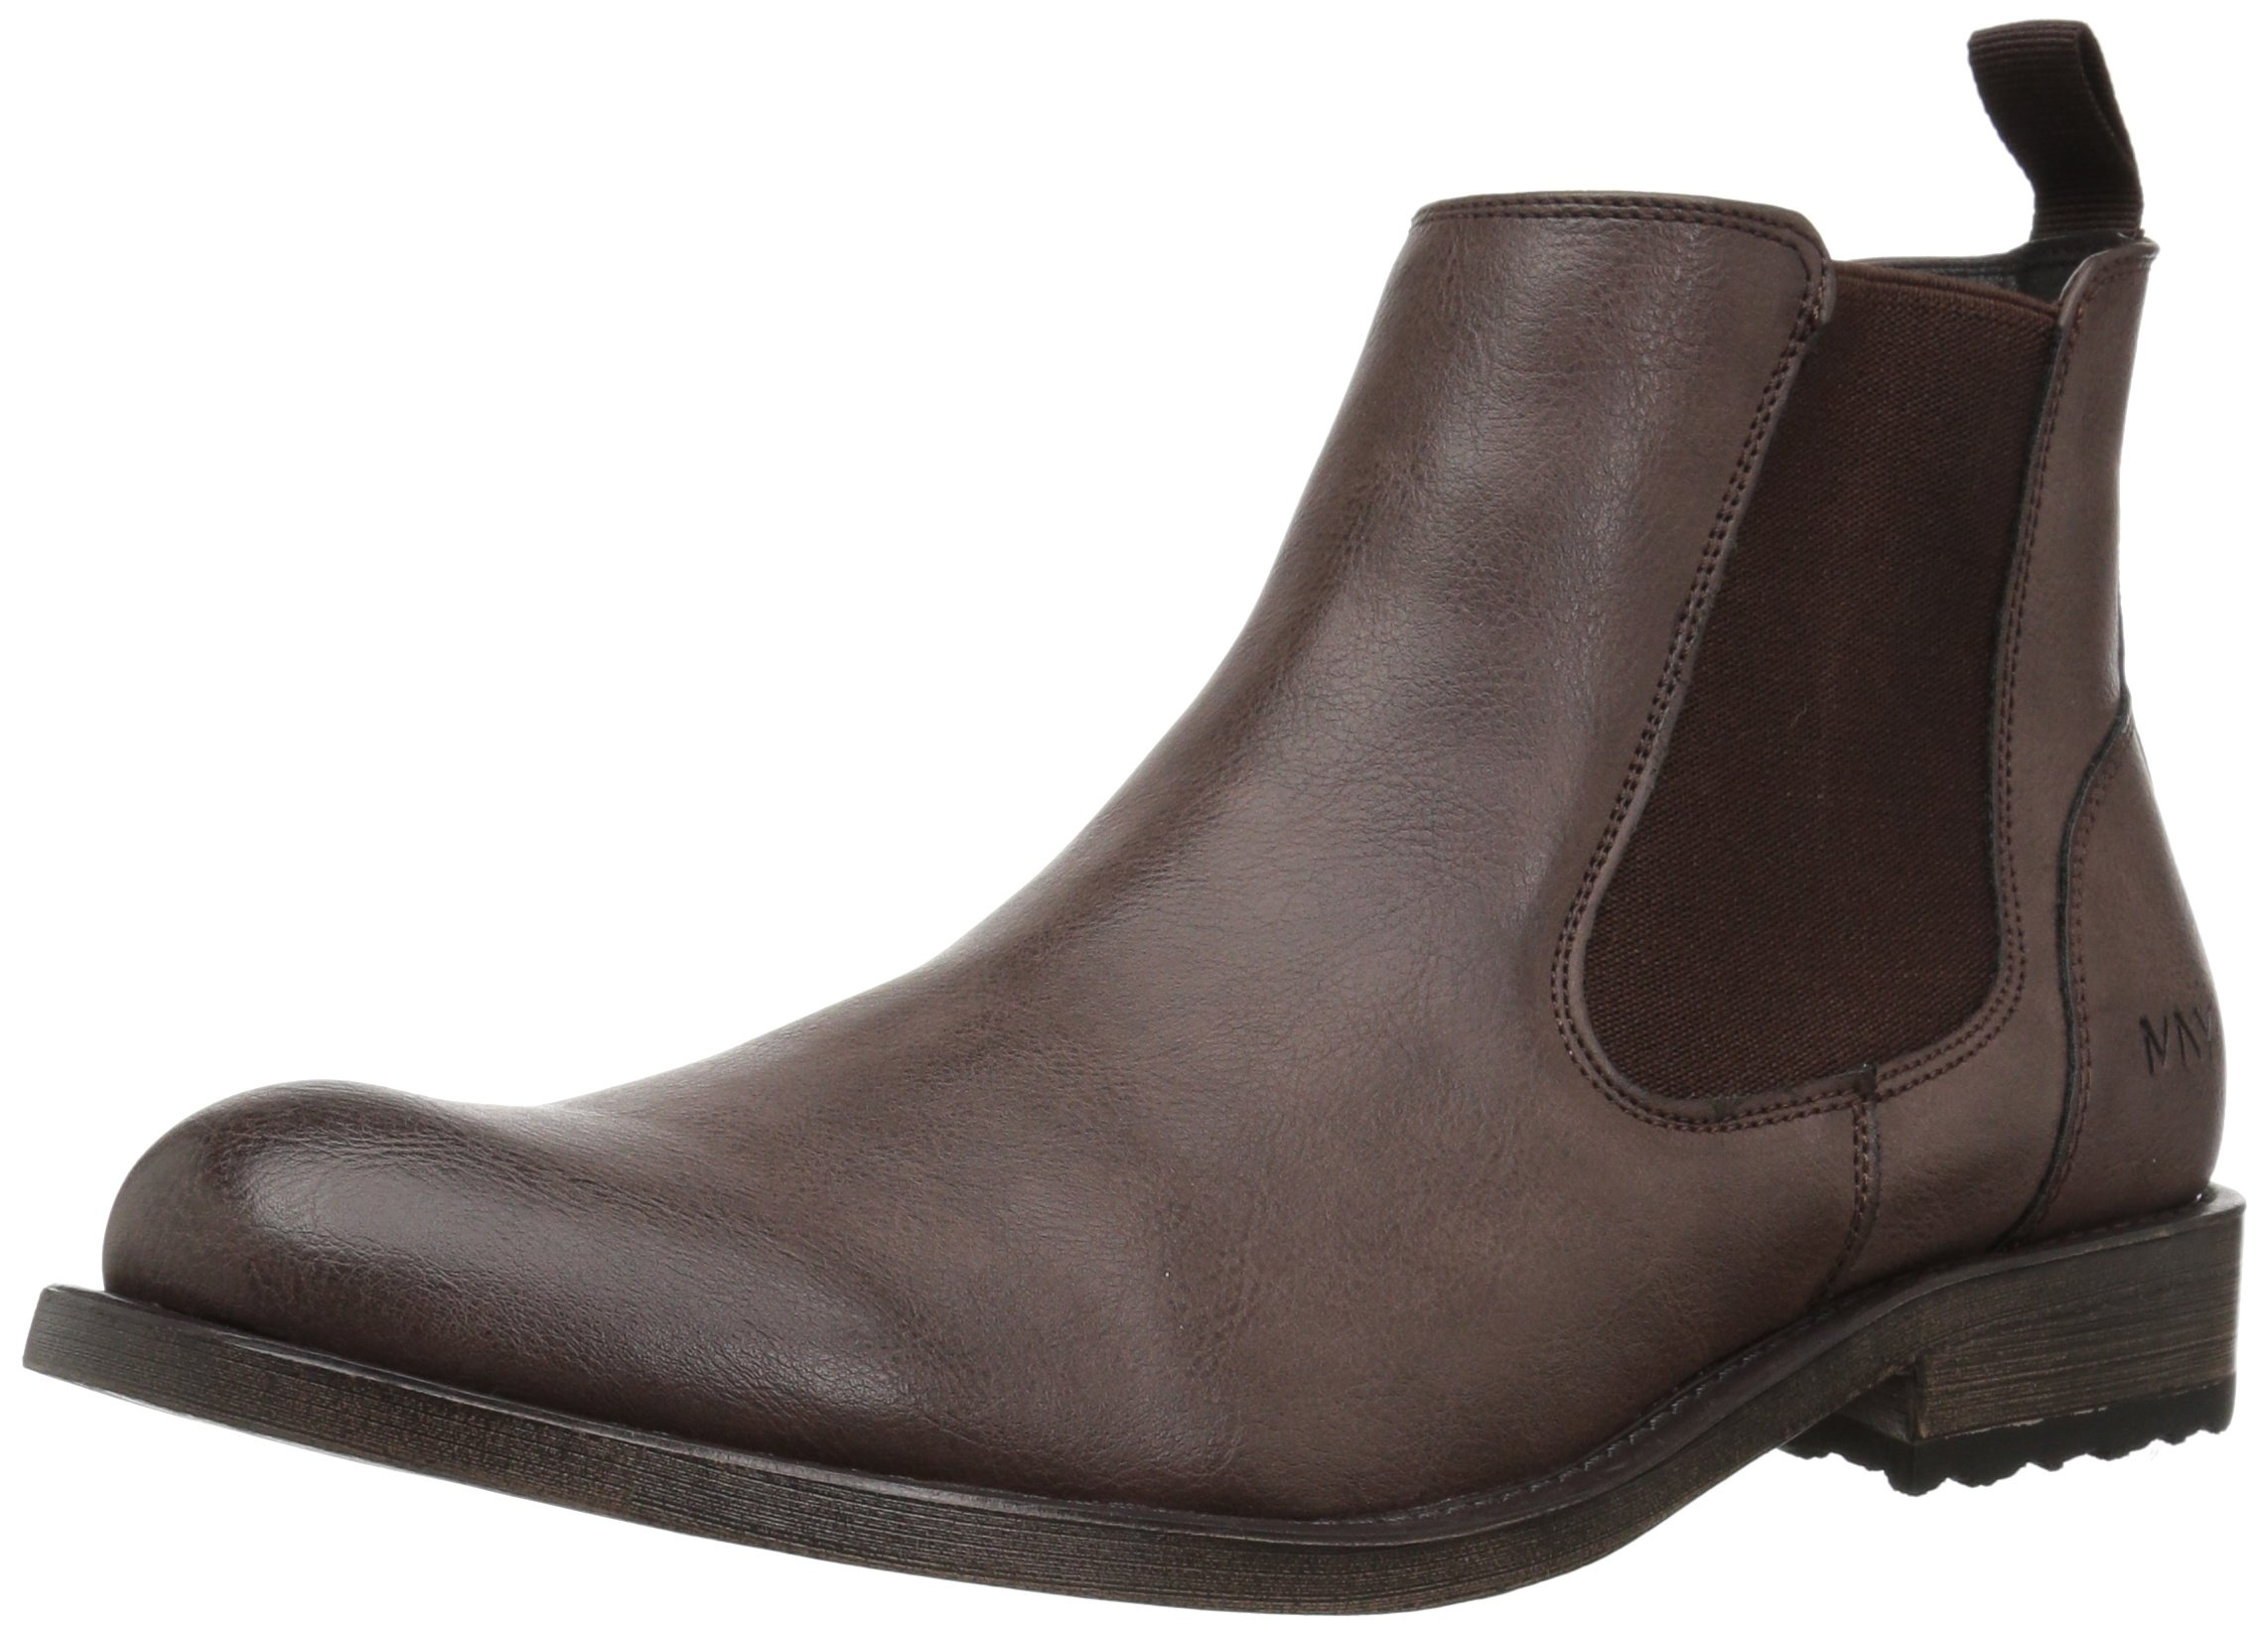 Marc New York Men's Parson Chelsea Boot, Coffee/Black, 11.5 M US